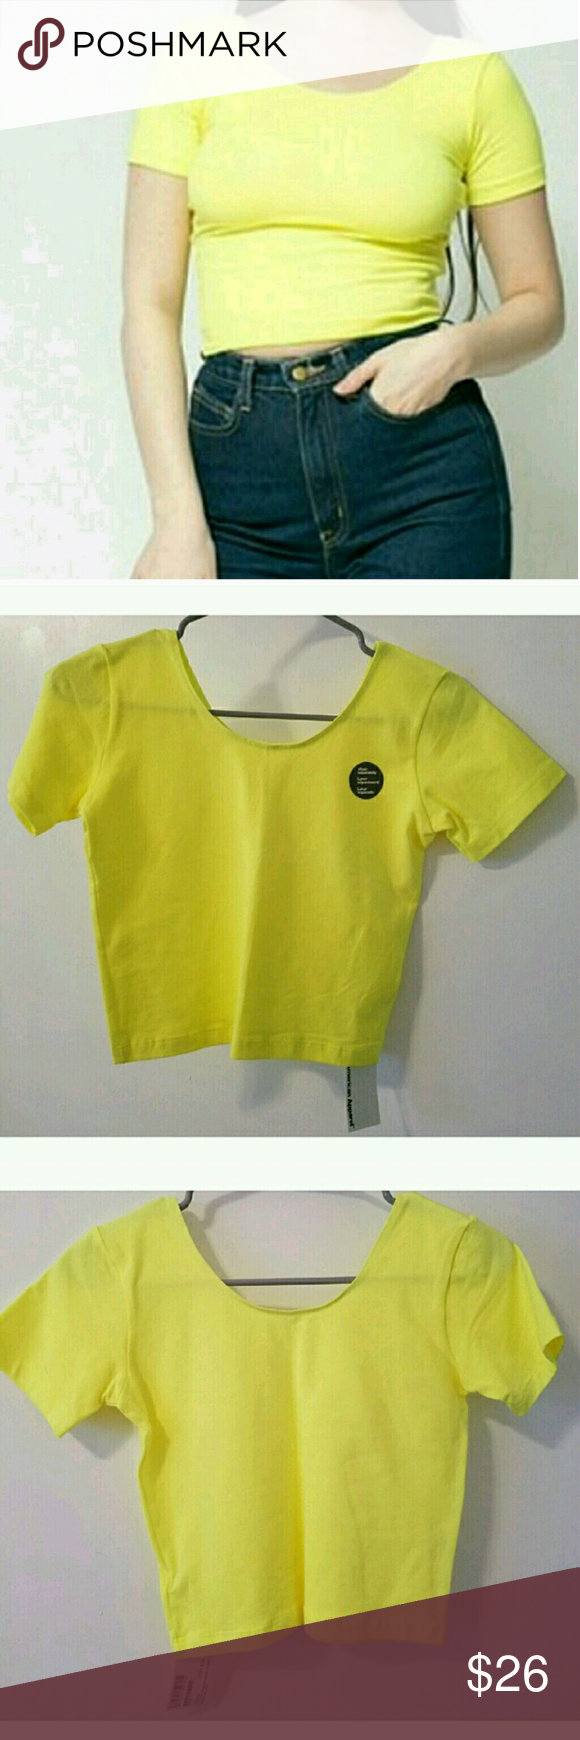 b2cc974946313 American Apparel Neon Yellow Crop Top Neon Yellow Crop Top. Perfect  everyday Top with Jeans